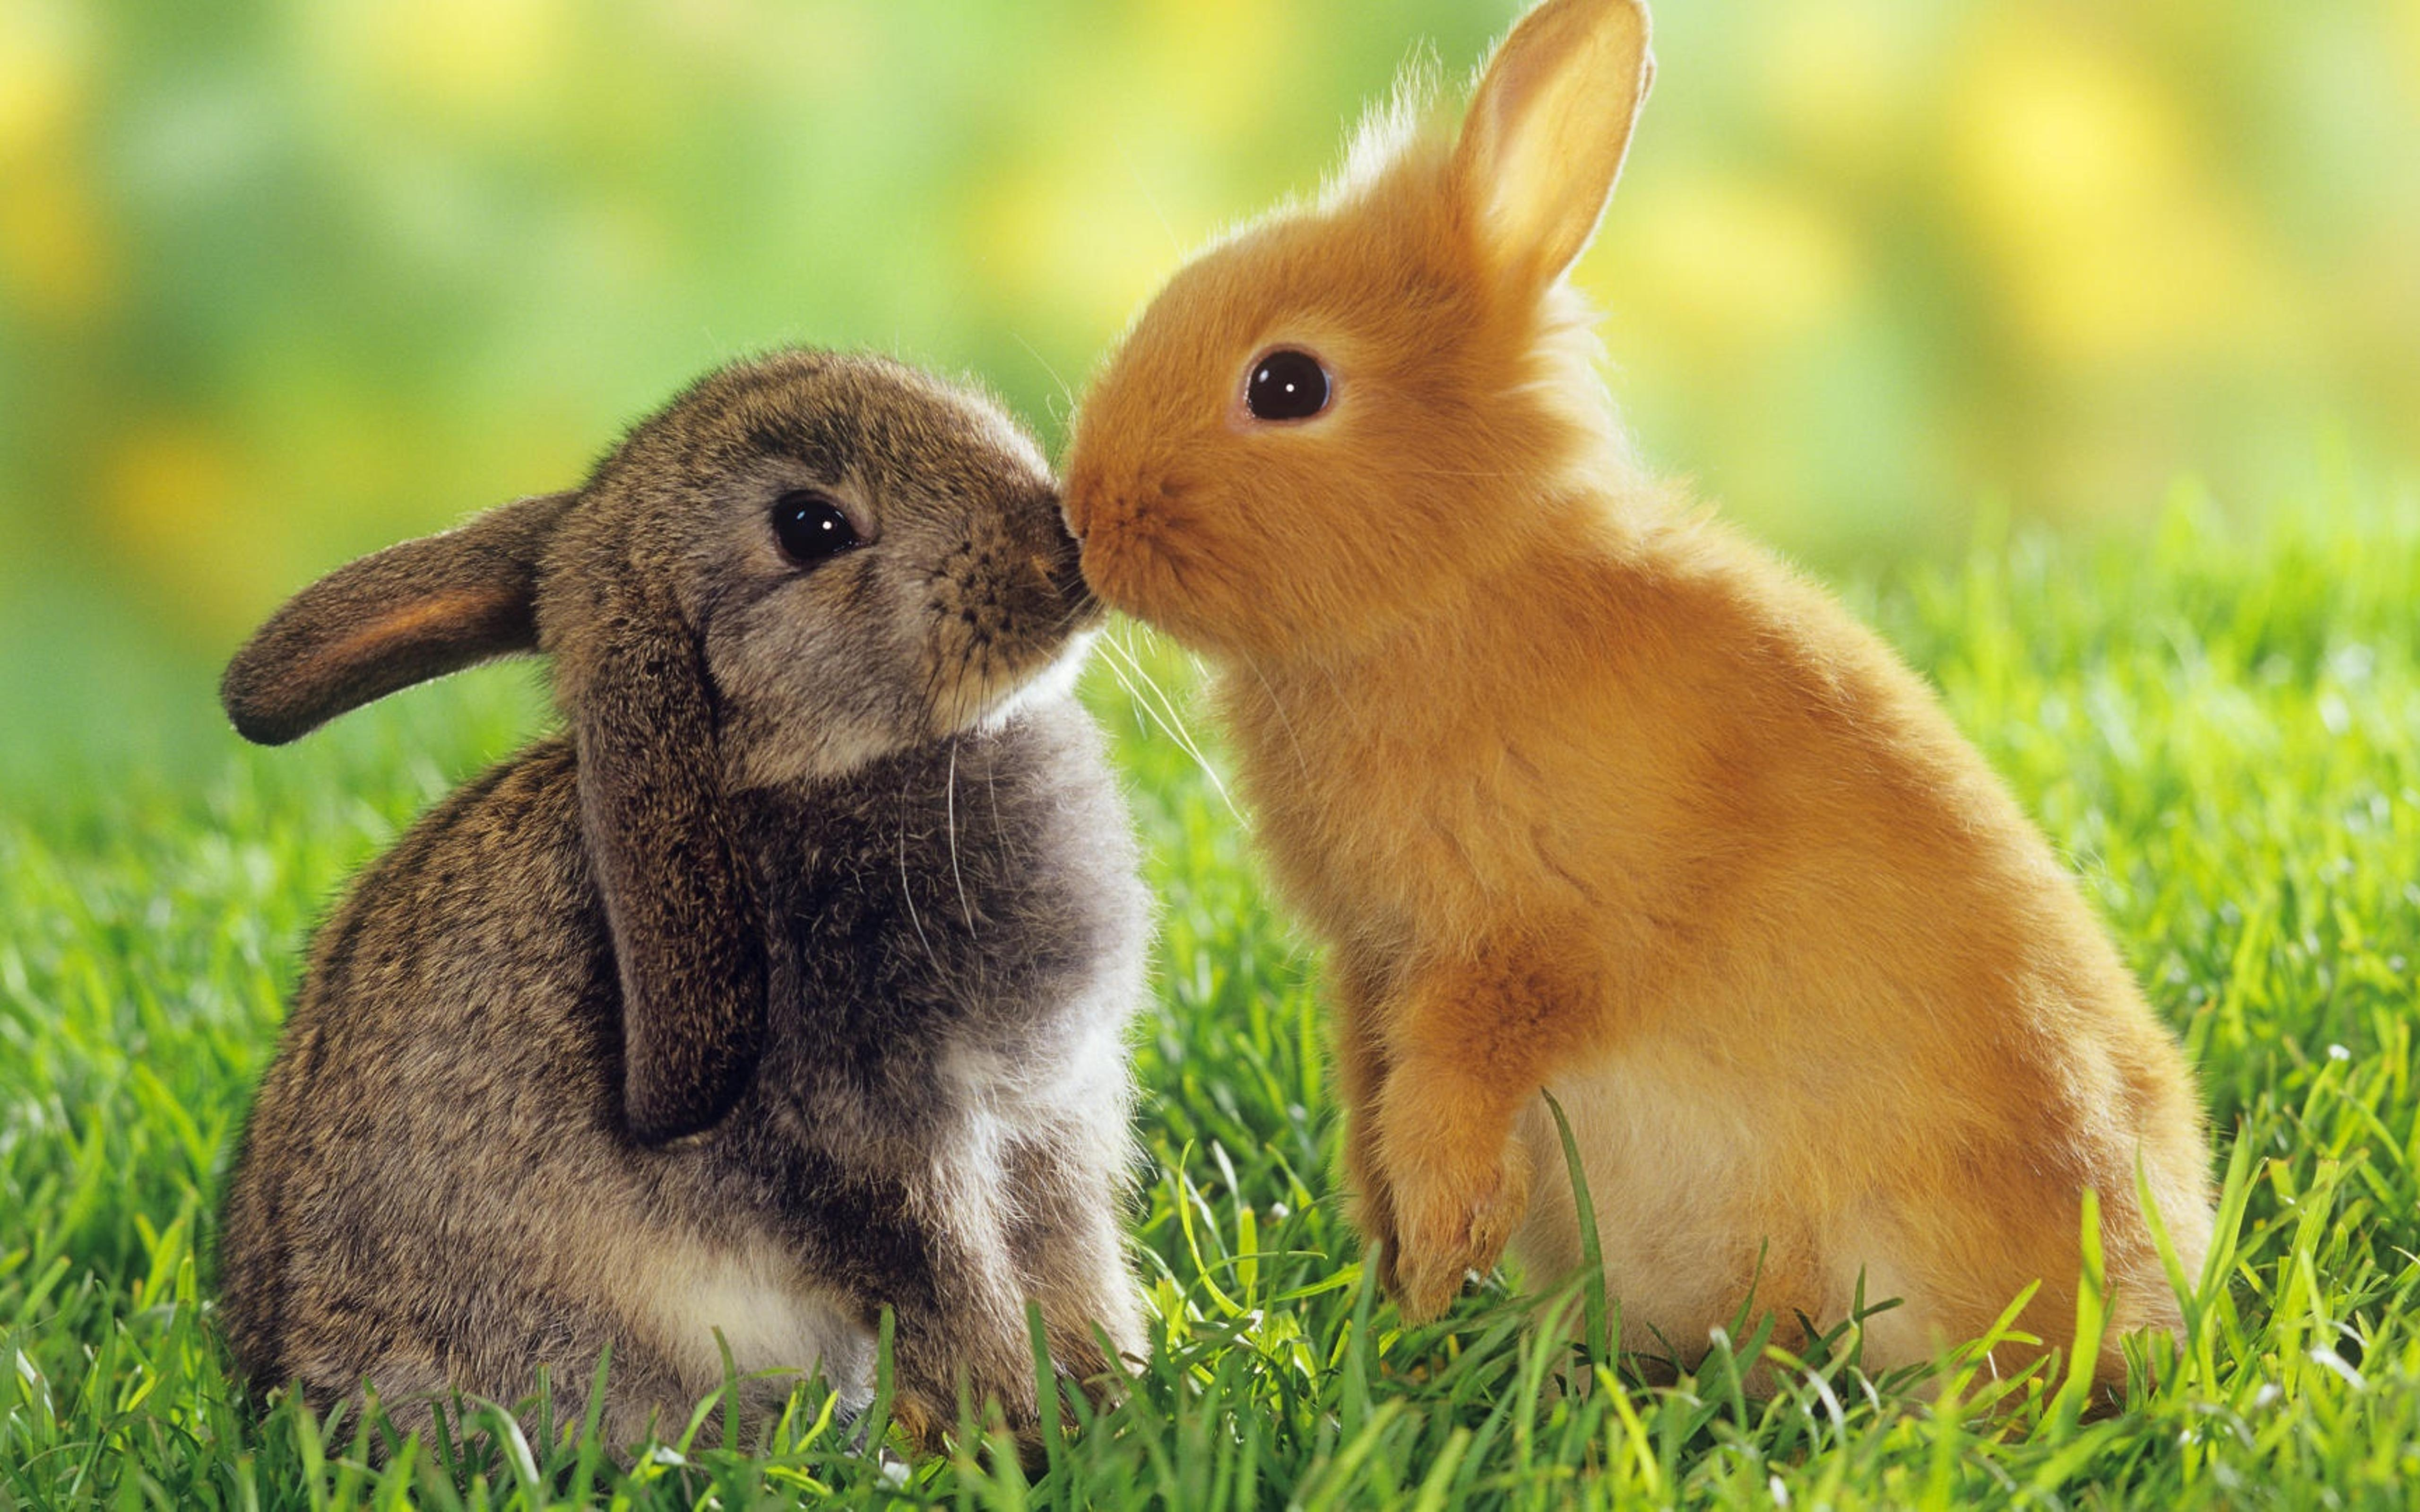 Download Wallpapers Download 2790x2547 Animals Grass: Sweet Animals In The Grass Wallpaper